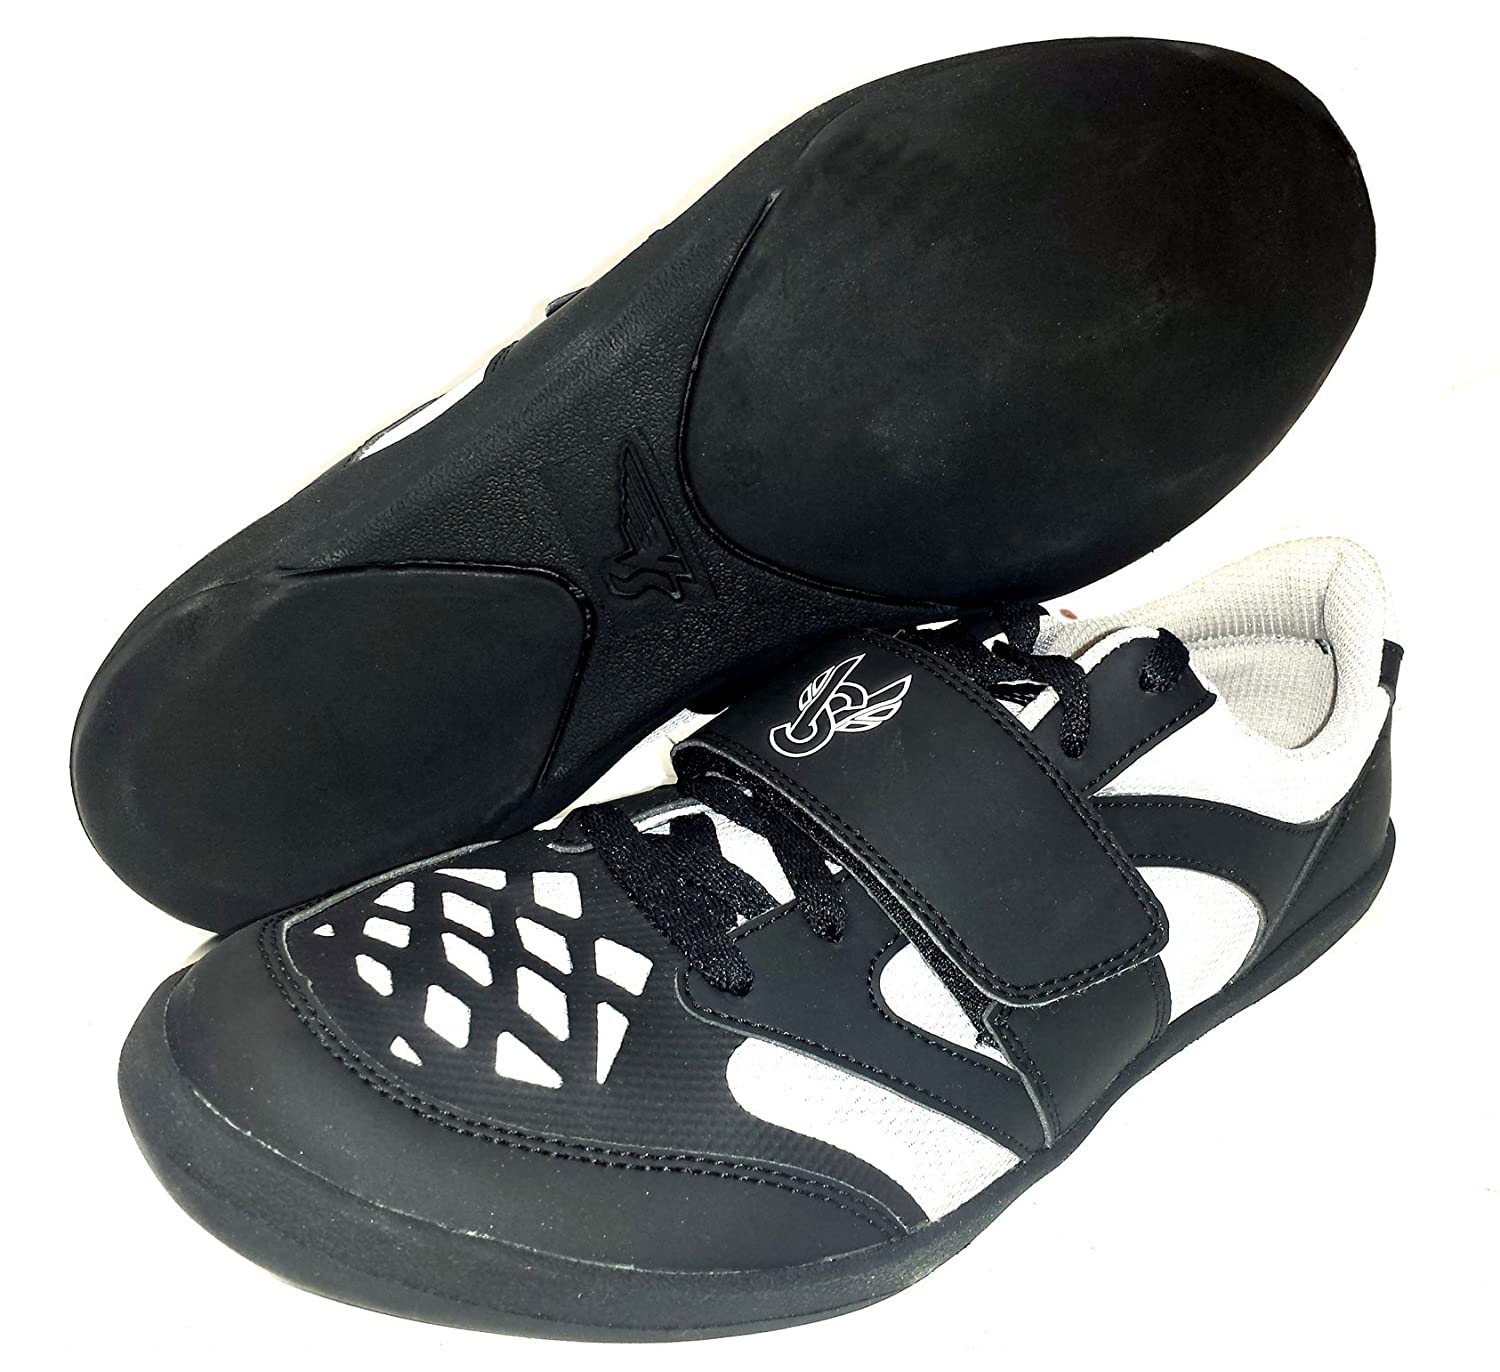 under armour throwing shoes